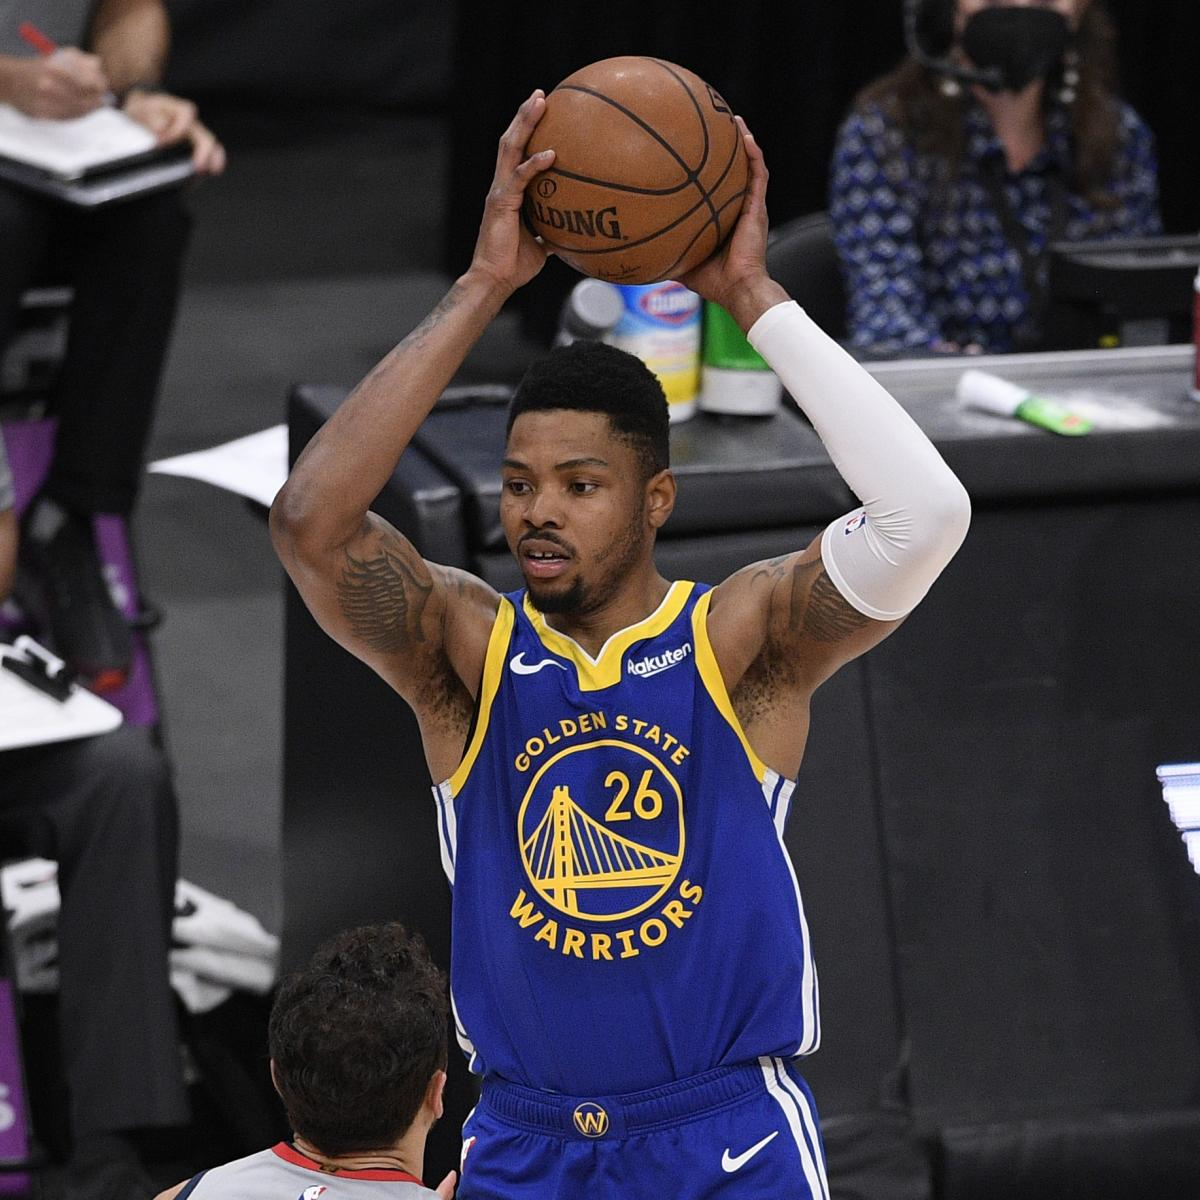 lakers-news-kent-bazemore-is-of-the-same-opinion-to-1-one-year-contract-to-be-part-of-lebron-james-in-la.jpg